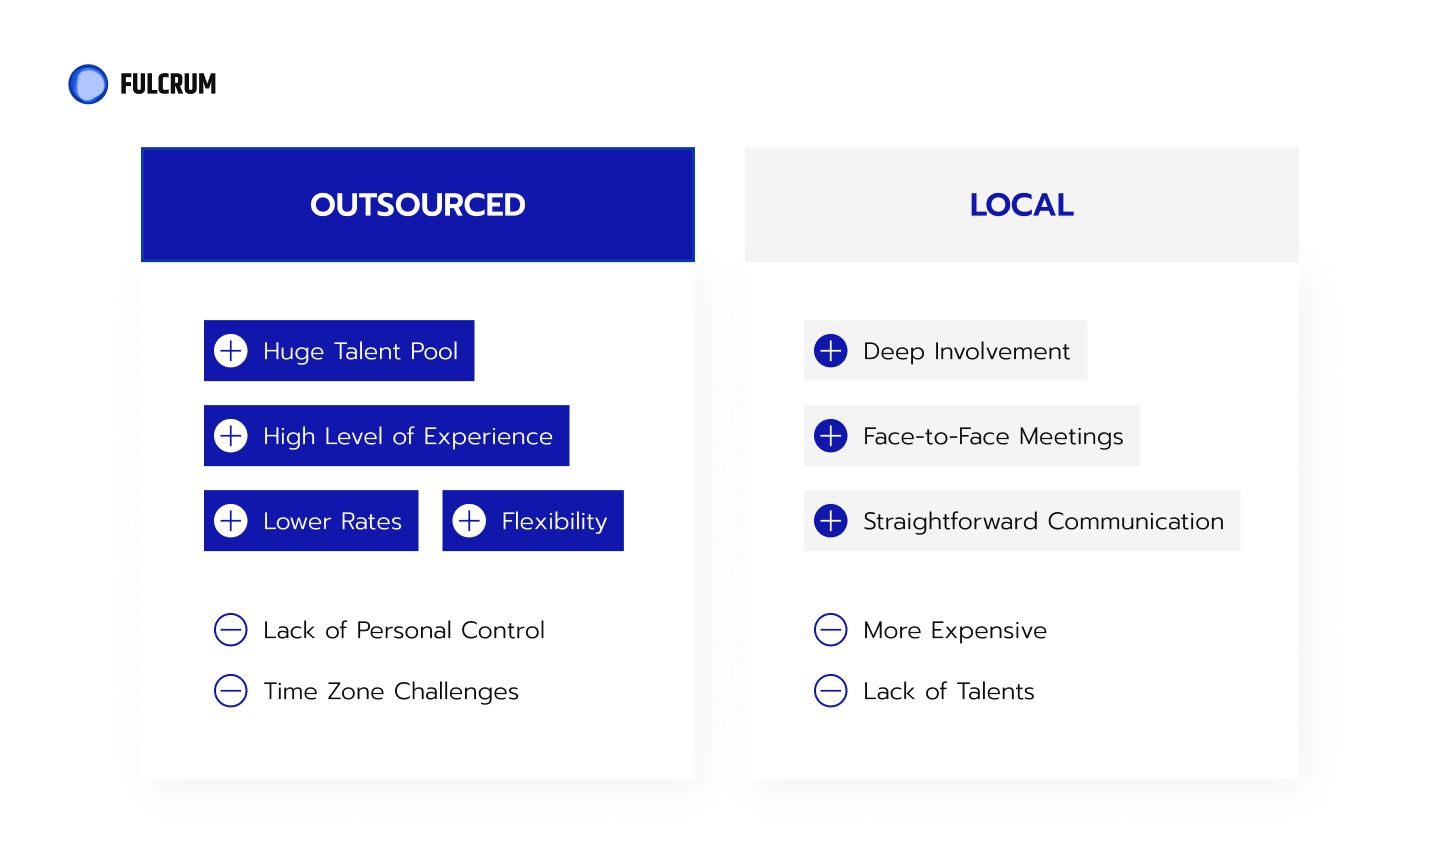 outsourcing vs. local.